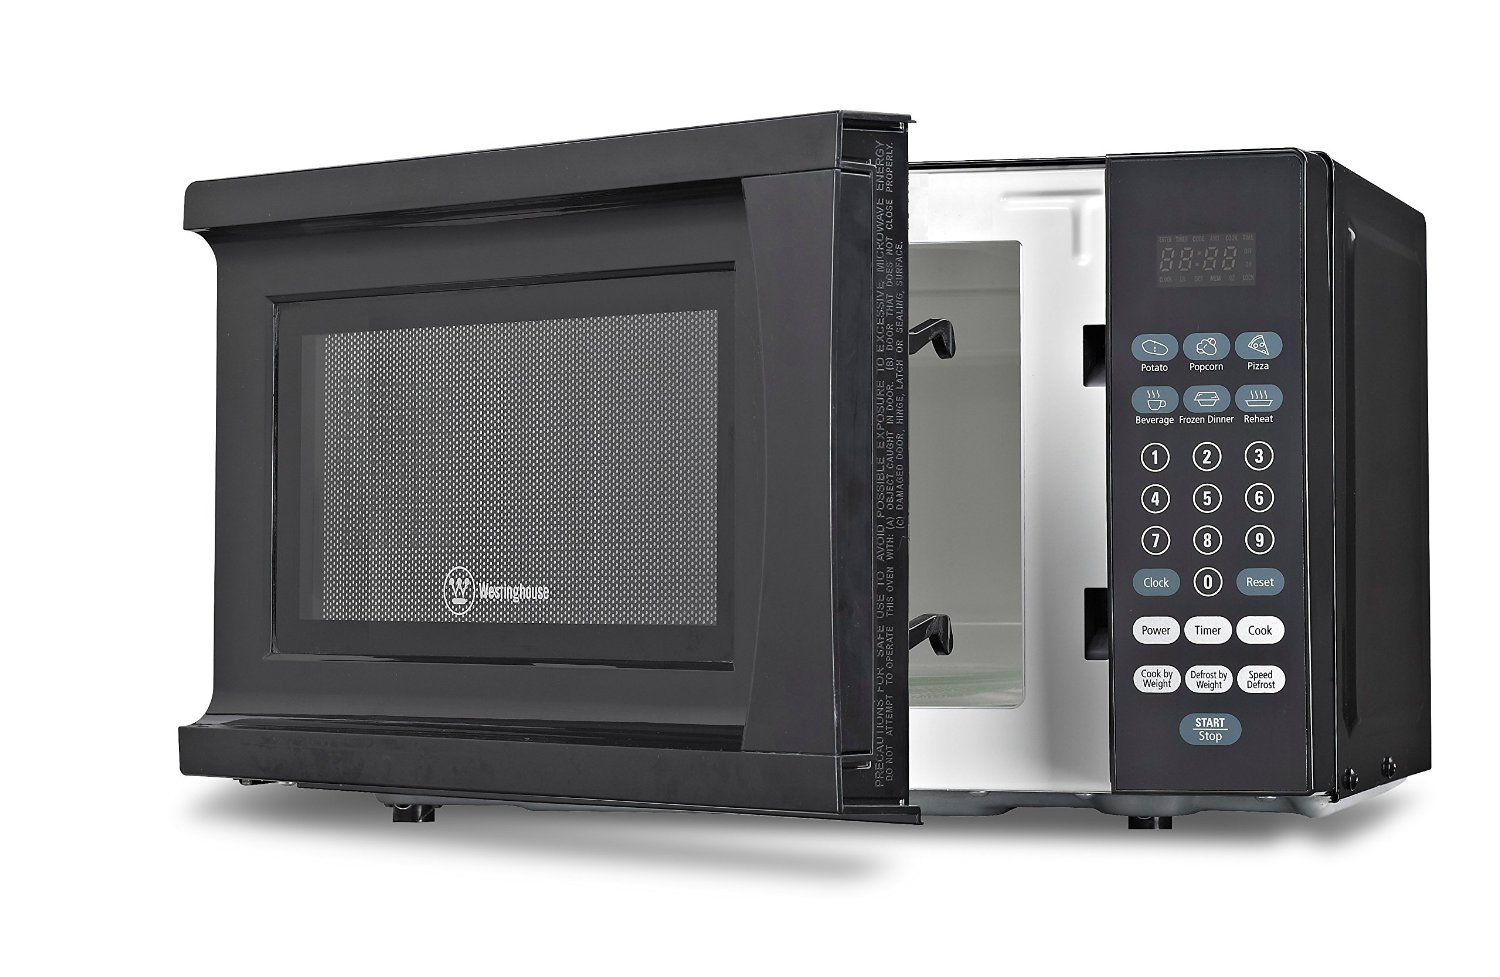 Westinghouse 700 Watt Microwave Oven Only $38! (62% Off!)